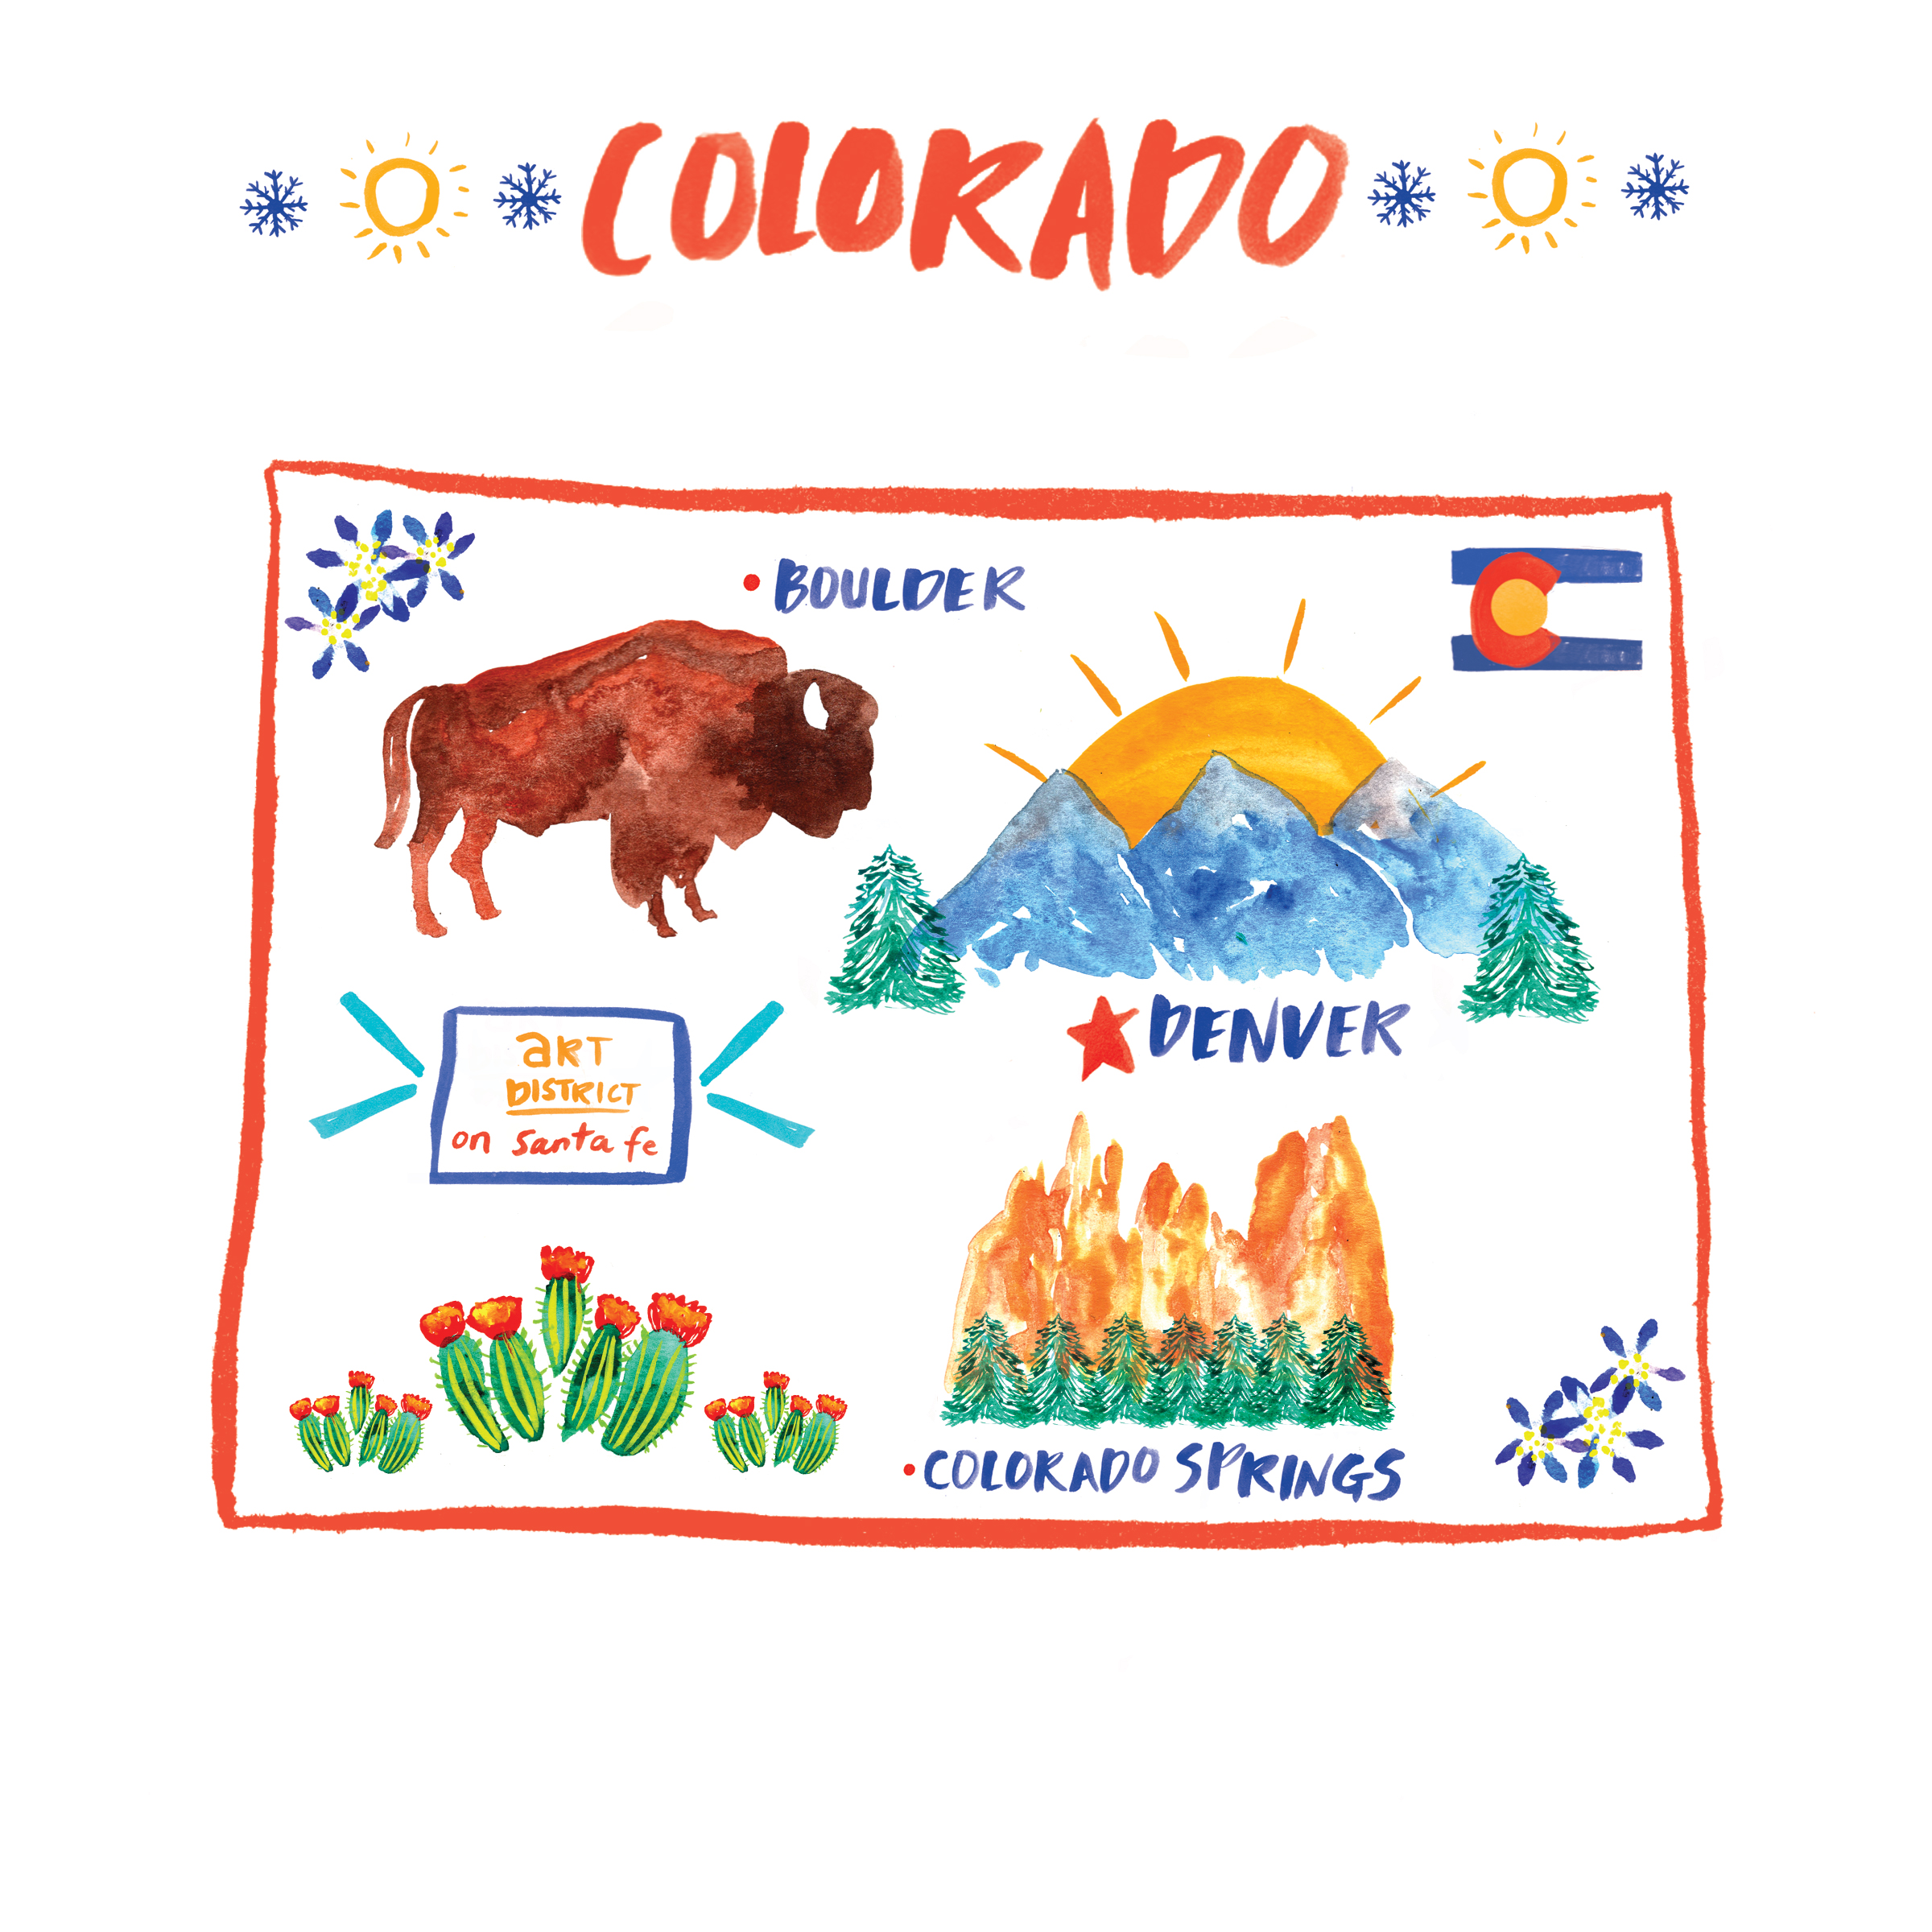 COLORADO - I had been wanting to go to Colorado for a while and when I finally did I saw why people love it so much. 🏔 I spent sometime in Denver where air is super crisp and the downtown art scene is filled with awesomeness. (The art district on Santa Fe) I got to check out the magnificent Garden of the Gods in Colorado Springs and drove out to Boulder to shop, see the beautiful university campus and eat and drink yummy local food and beer. Can't wait to see you again CO!PLACES: DENVER, BOULDER, COLORADO SPRINGS